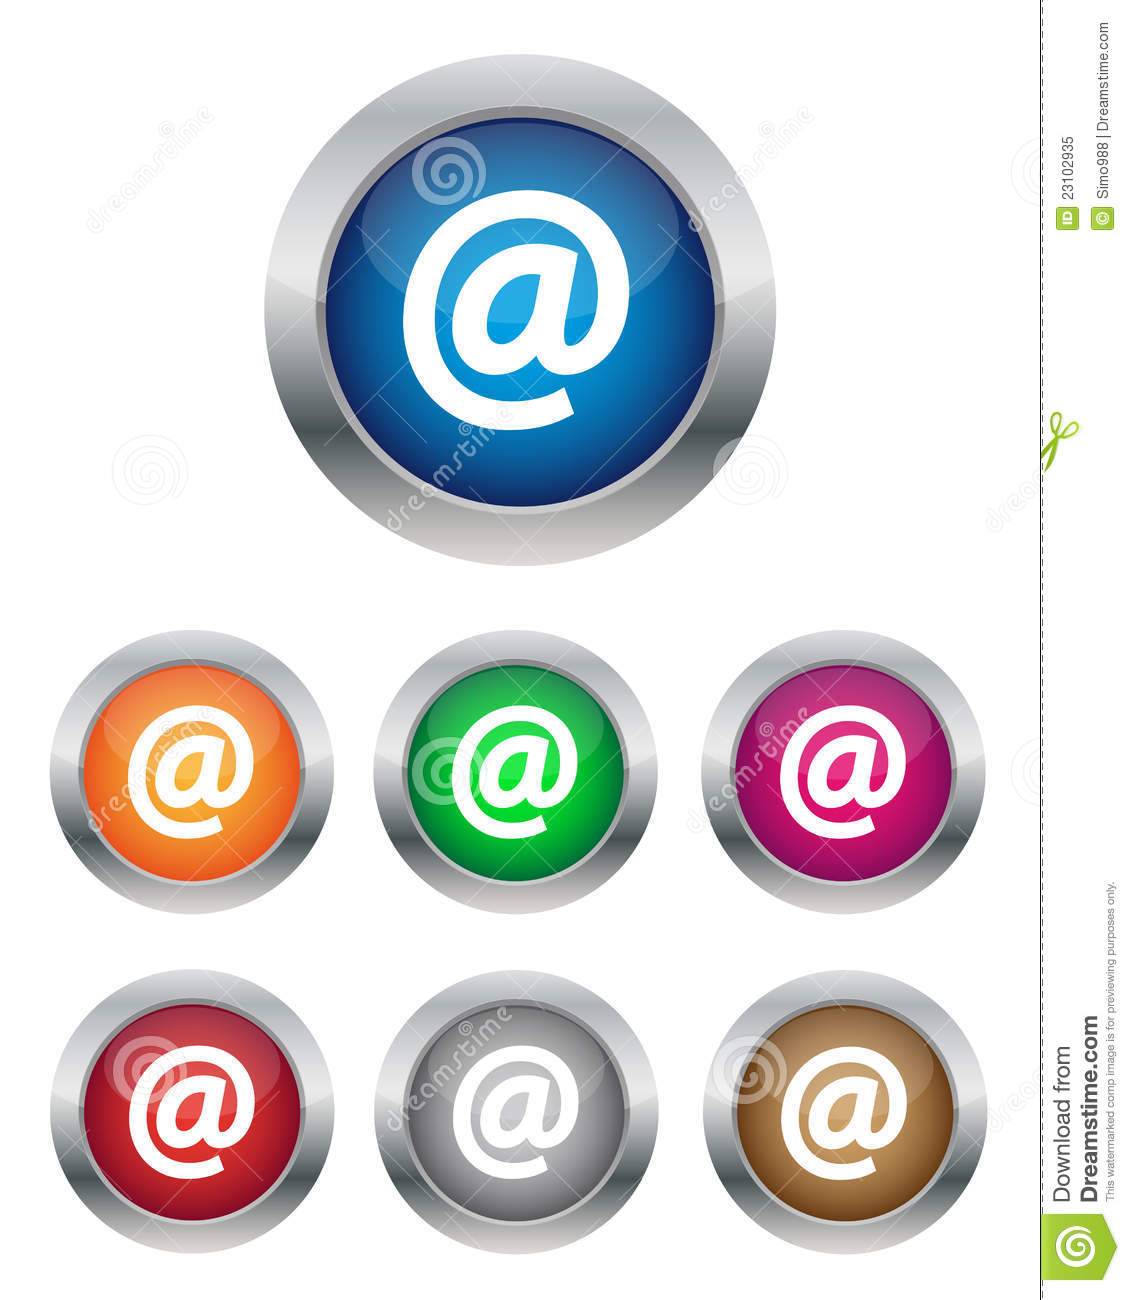 Email Buttons Royalty Free Stock Photo - Image: 23102935